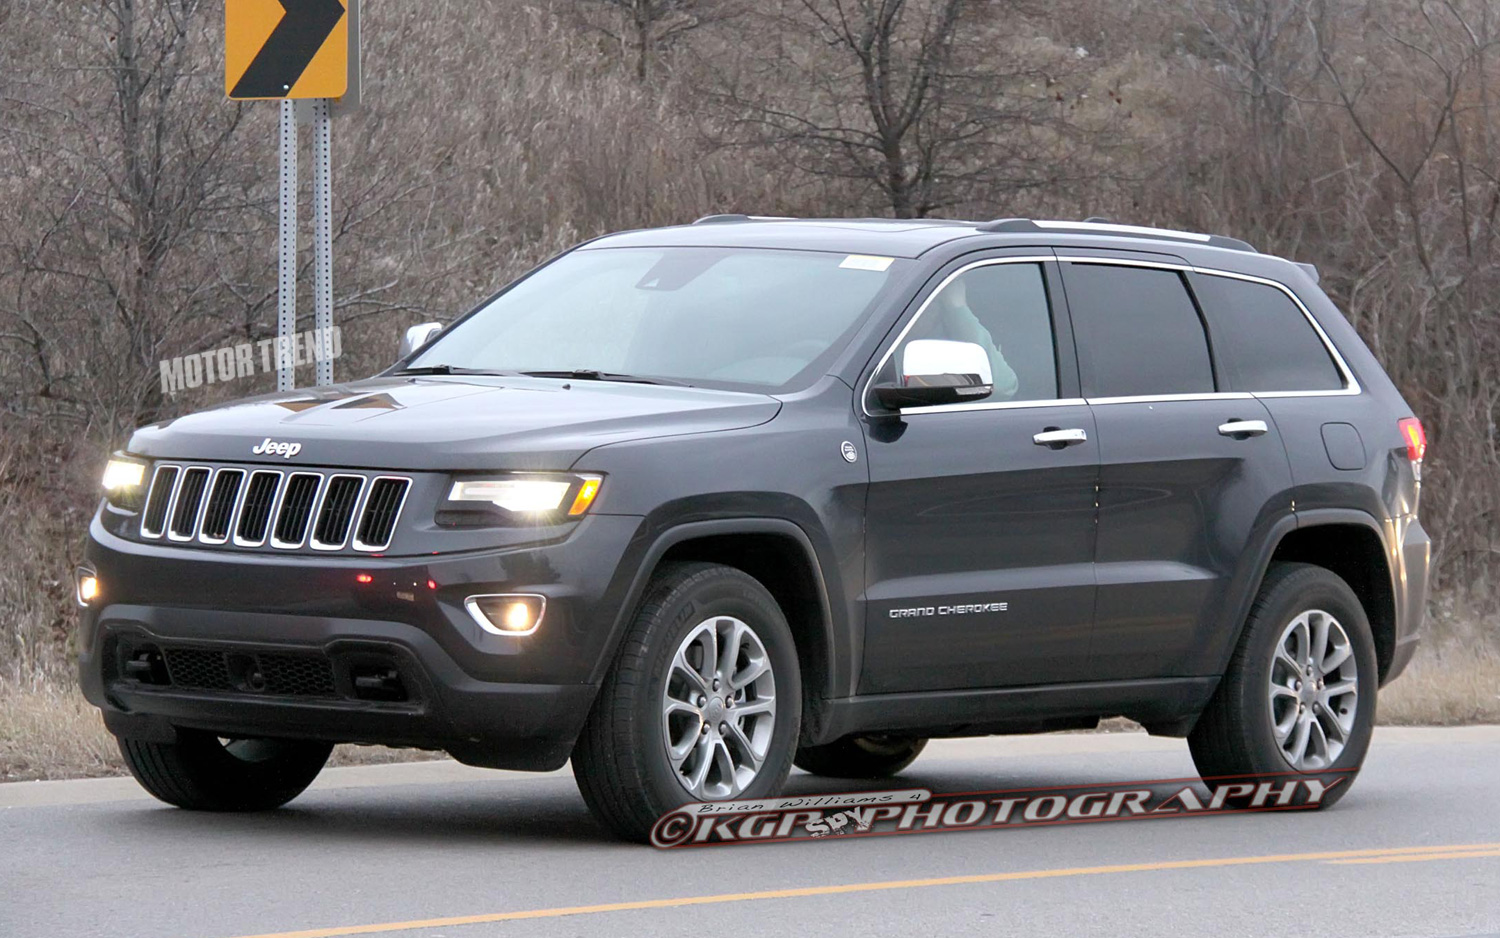 Caught: Refreshed 2014 Jeep Grand Cherokee Completely Revealed